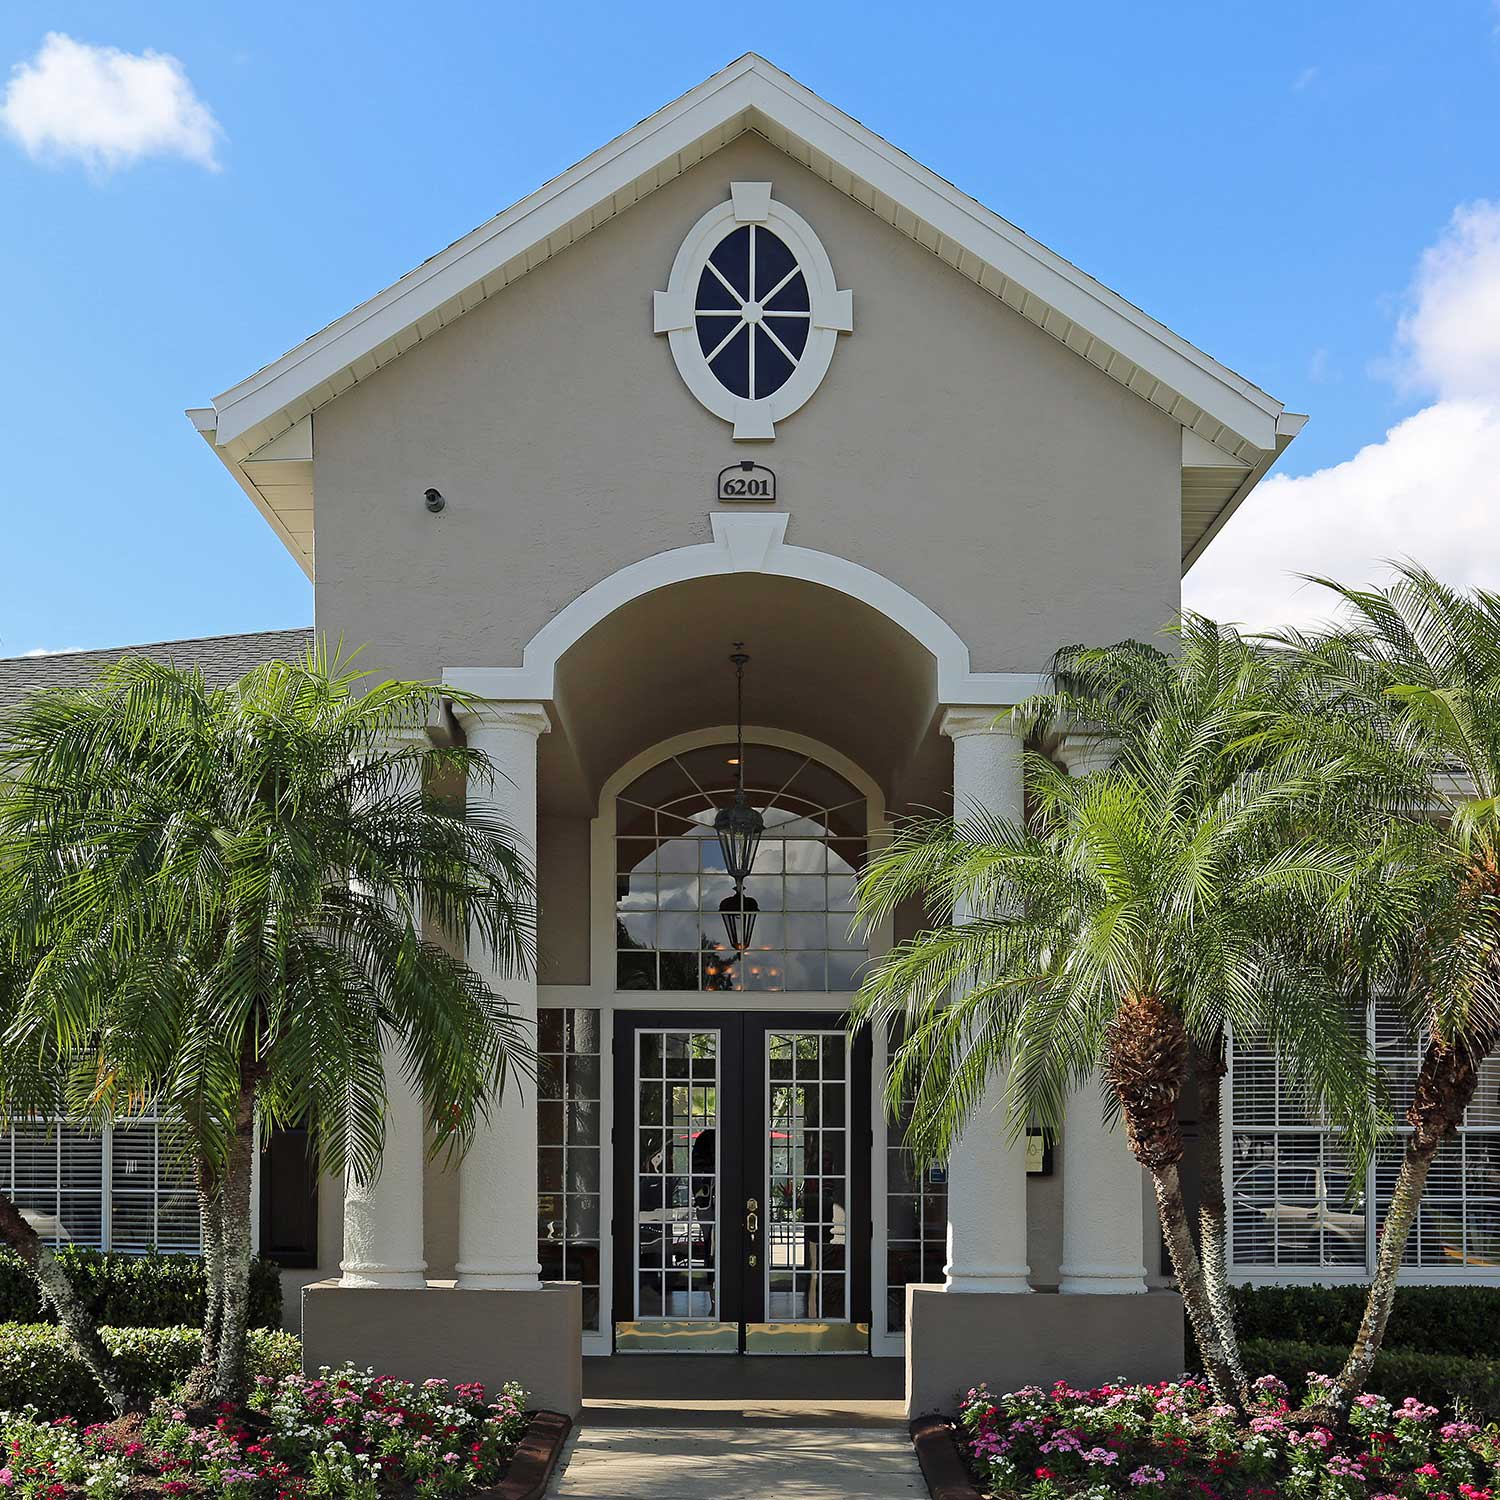 Facade of The Grand Reserve at Lee Vista in Orlando, FL